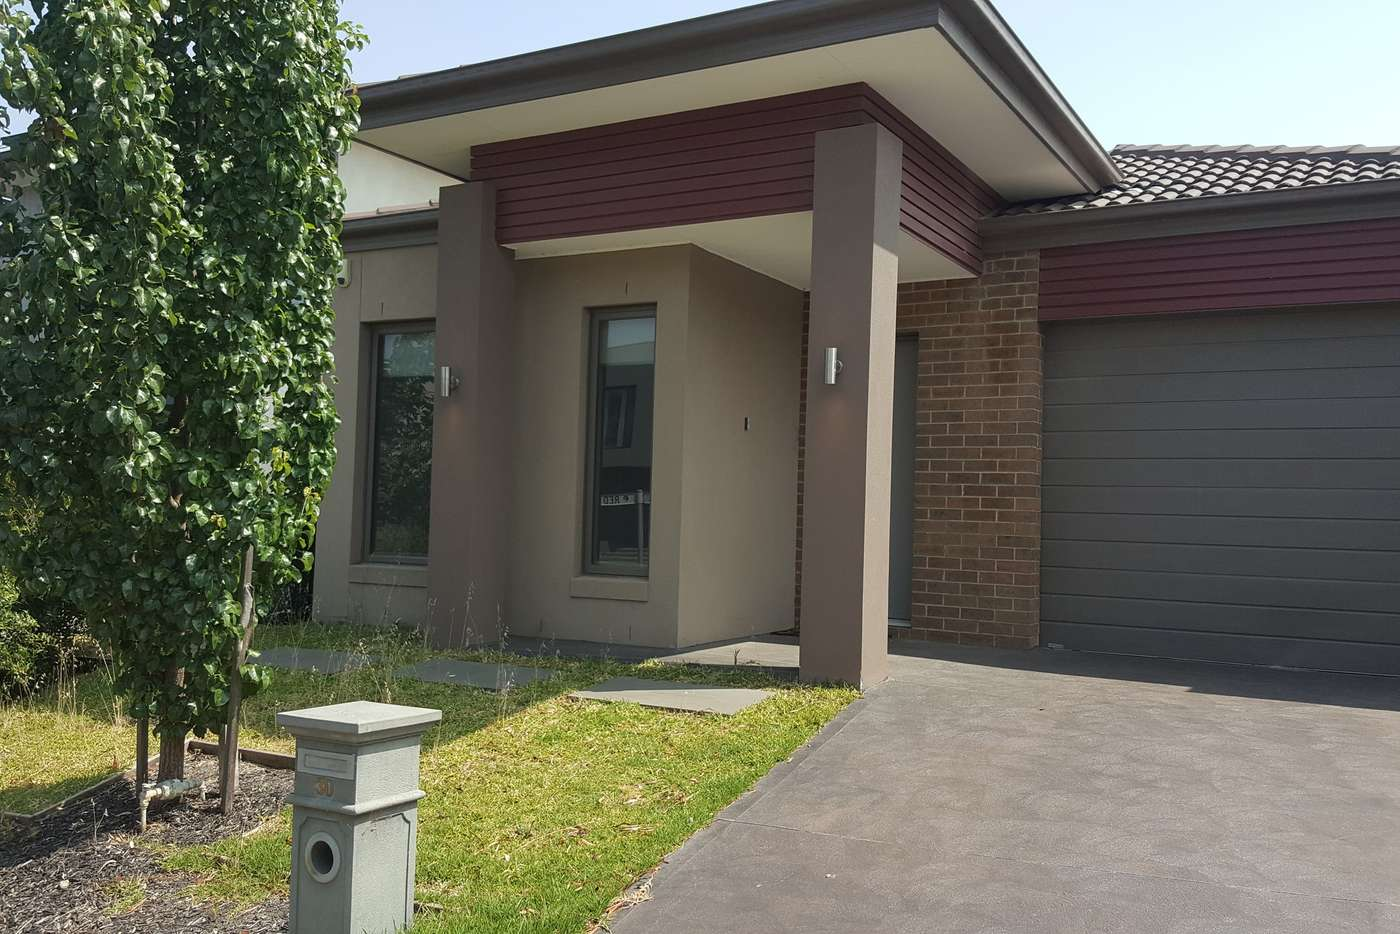 Main view of Homely house listing, 30 Red Box Street, Coburg VIC 3058